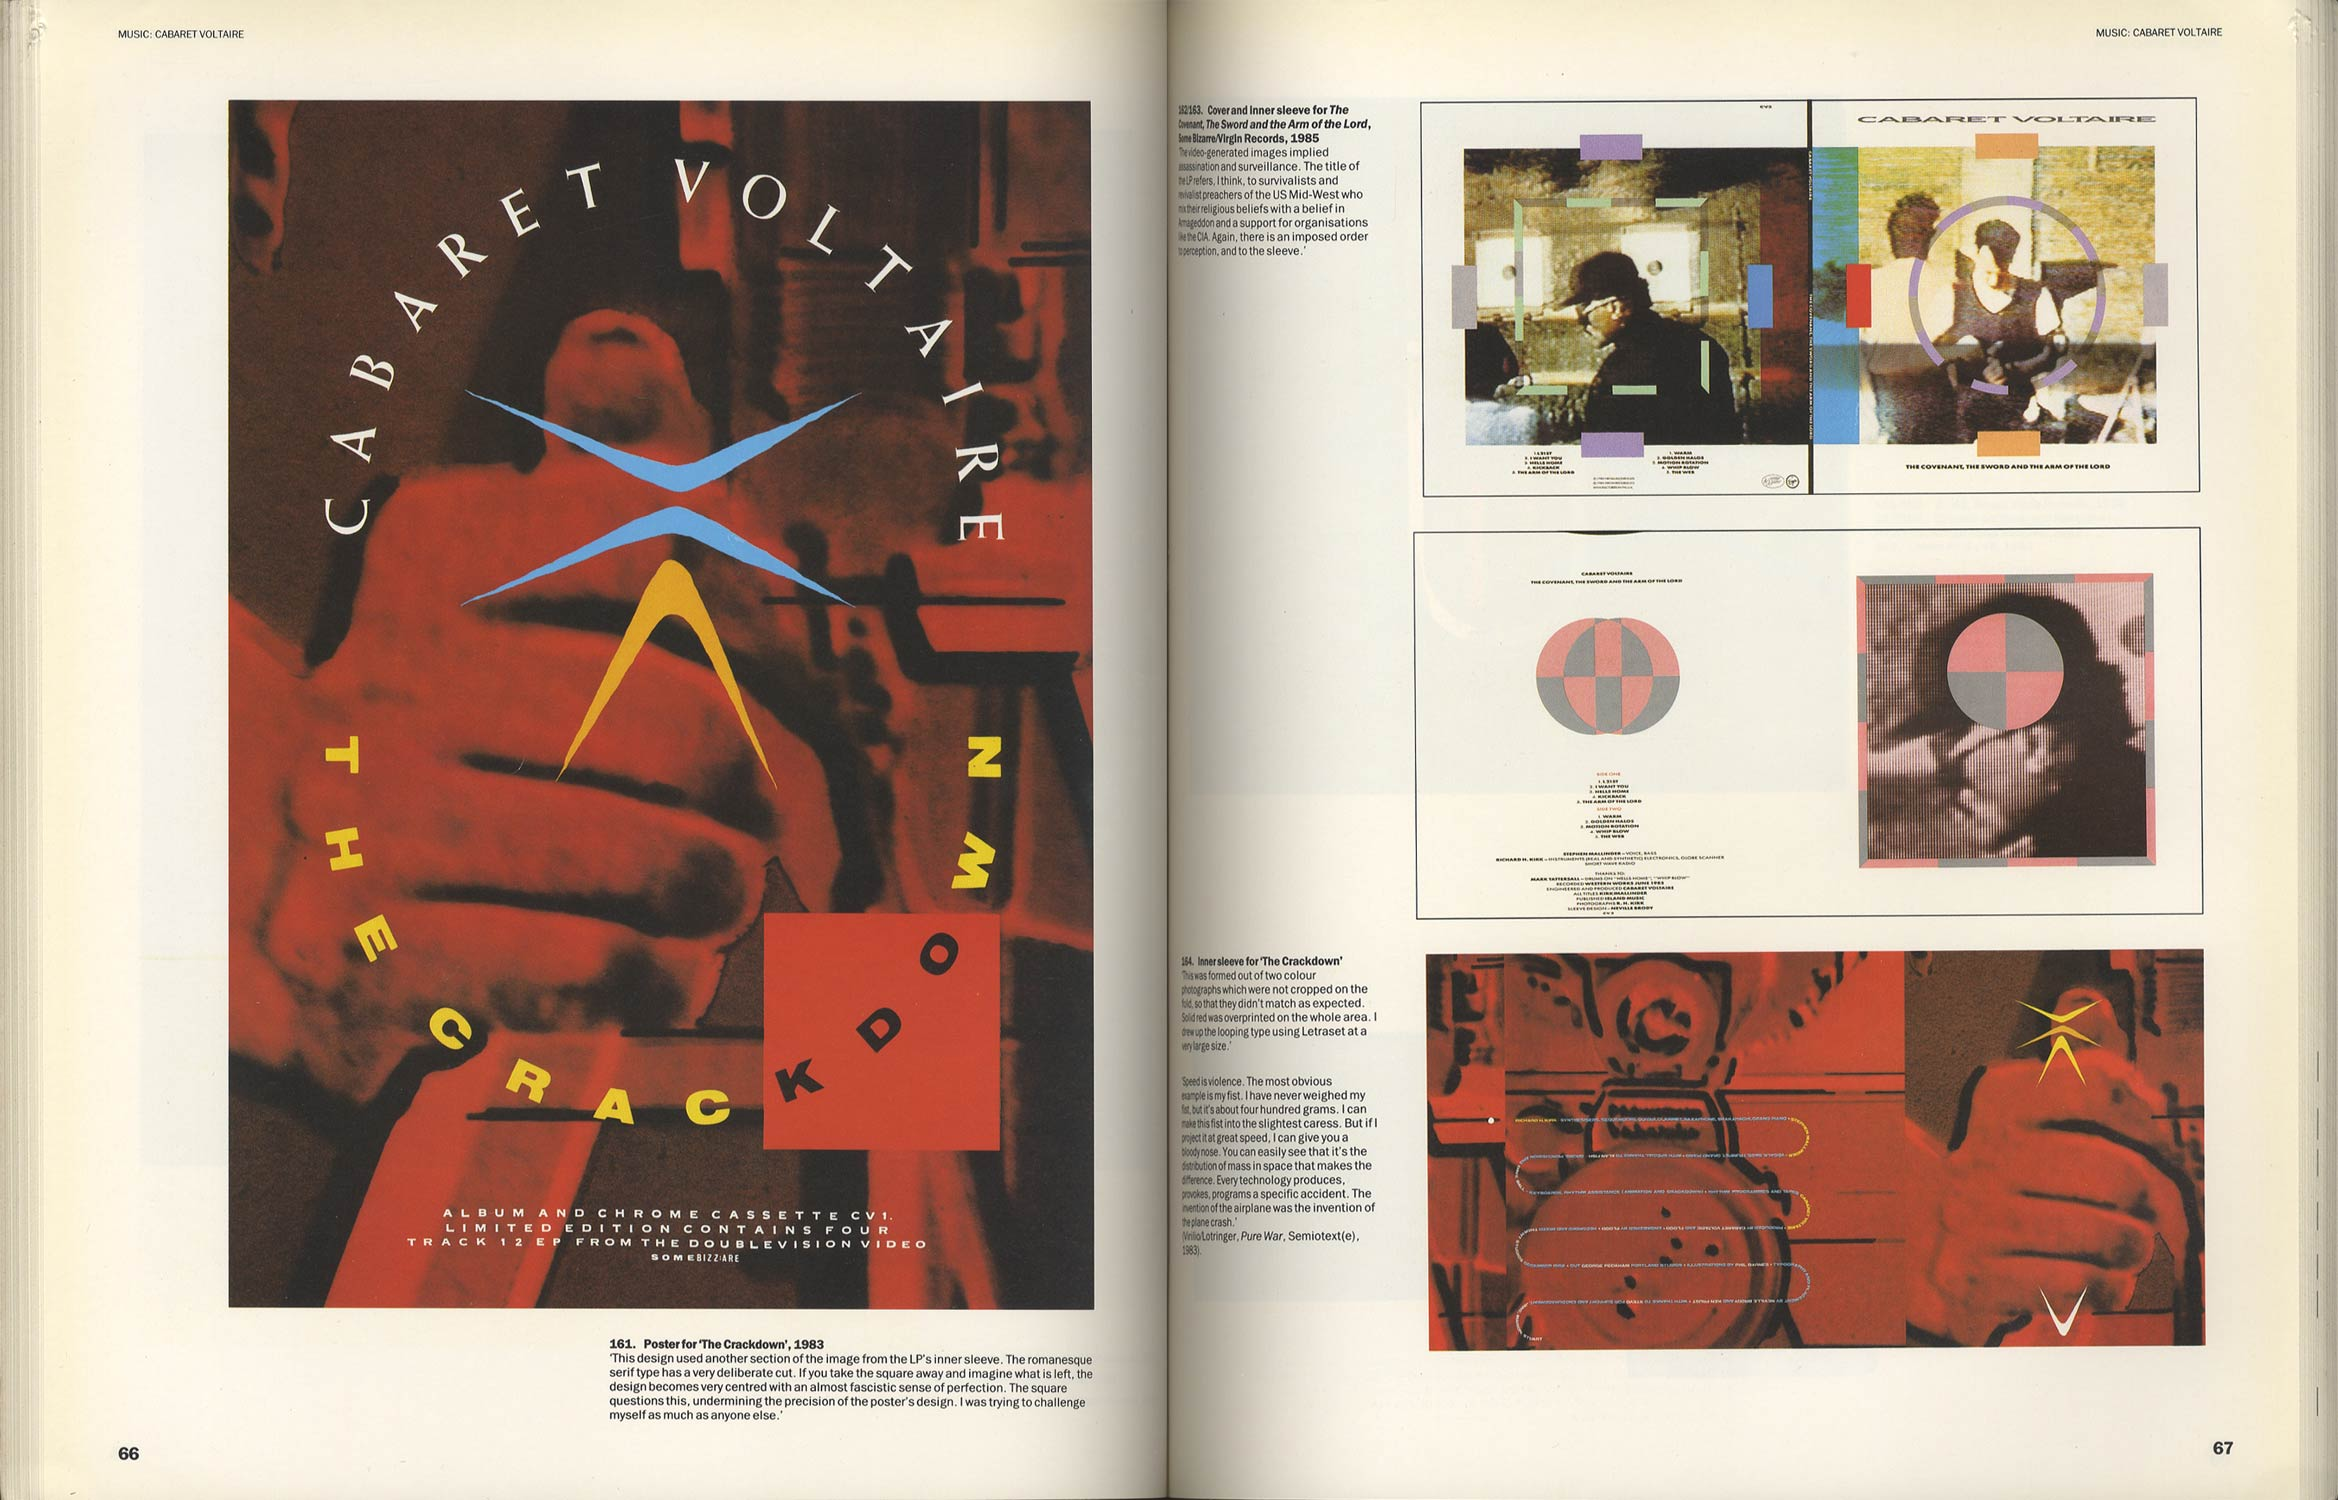 The Graphic Language of Neville Brody[image2]